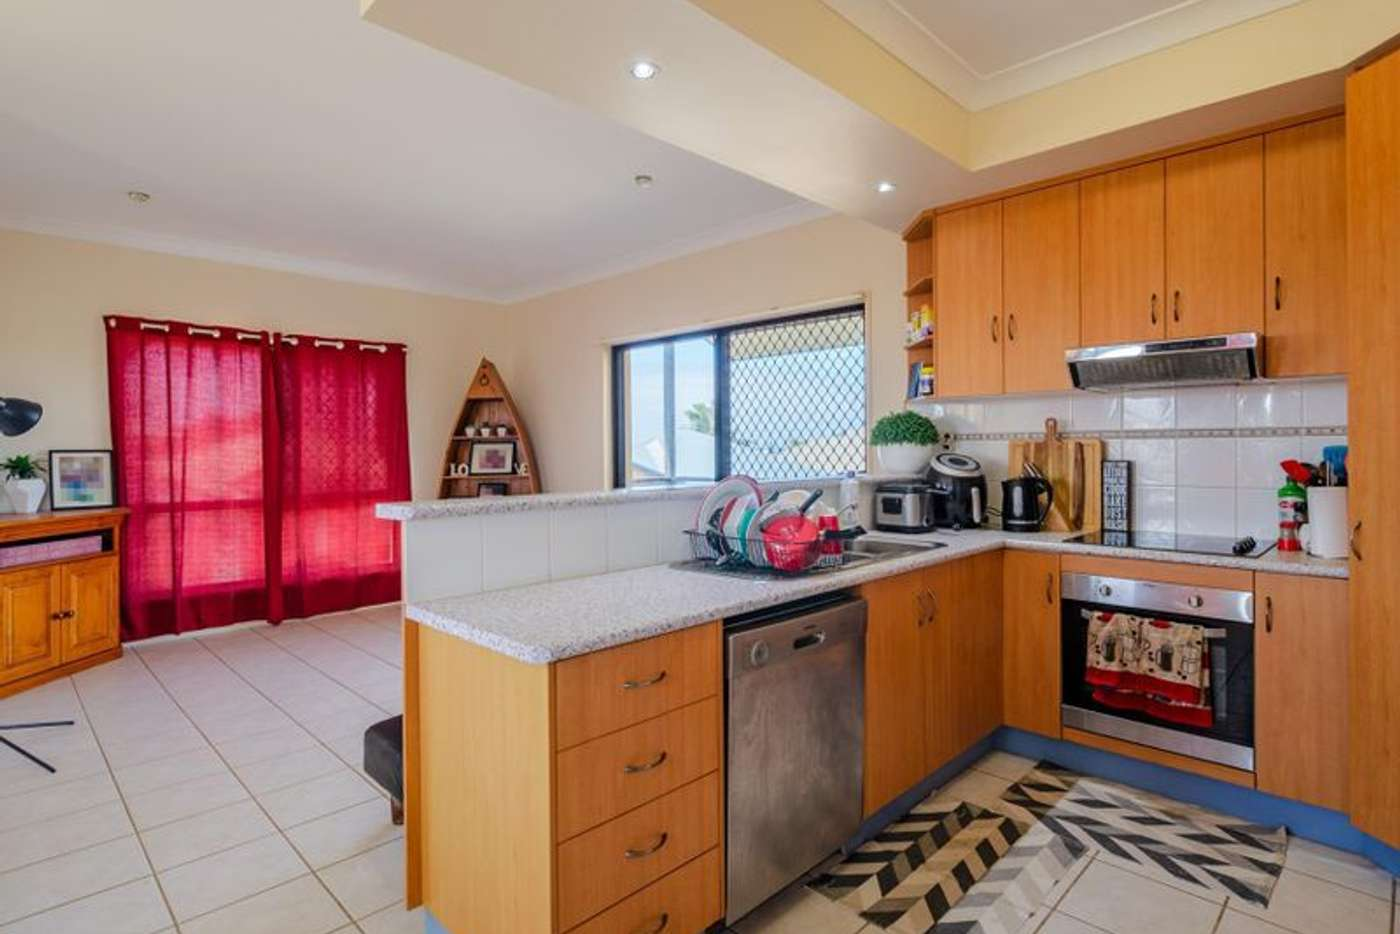 Sixth view of Homely house listing, 30 Robert John Circuit, Coral Cove QLD 4670